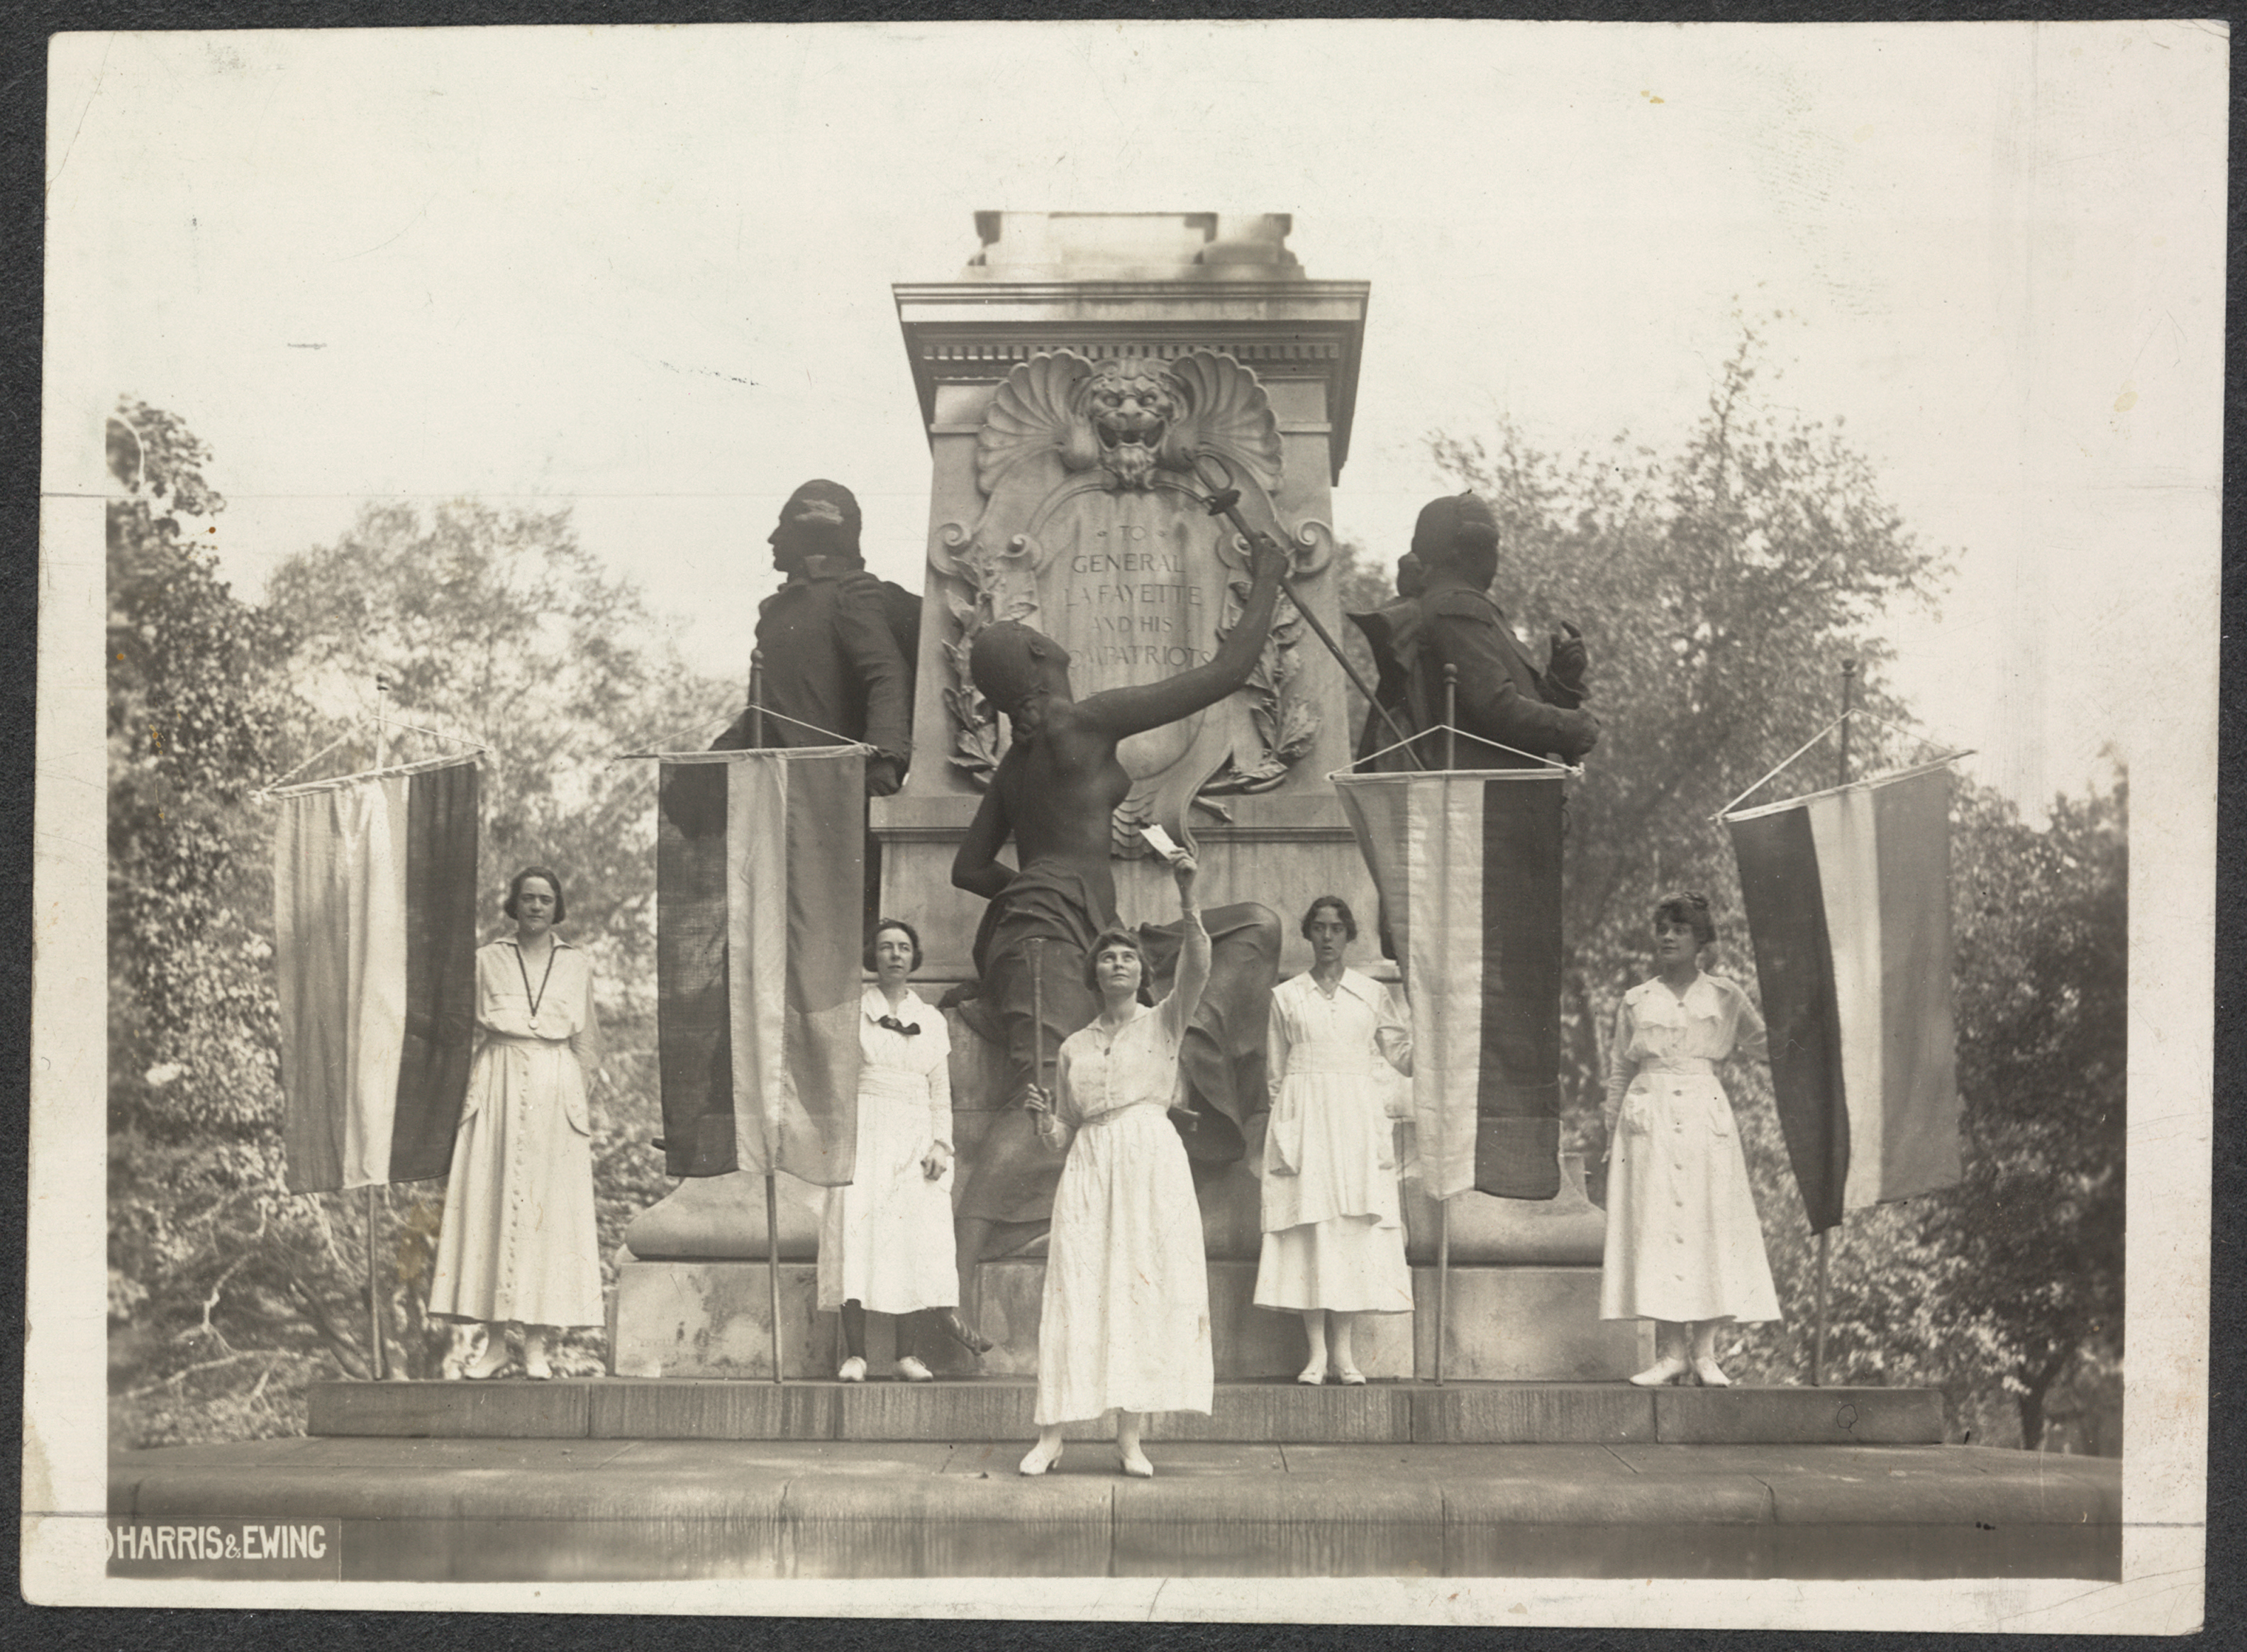 Suffrage protestors at the Lafayette statue in Washington, D.C., September 16, 1918, Harris & Ewing, 1918